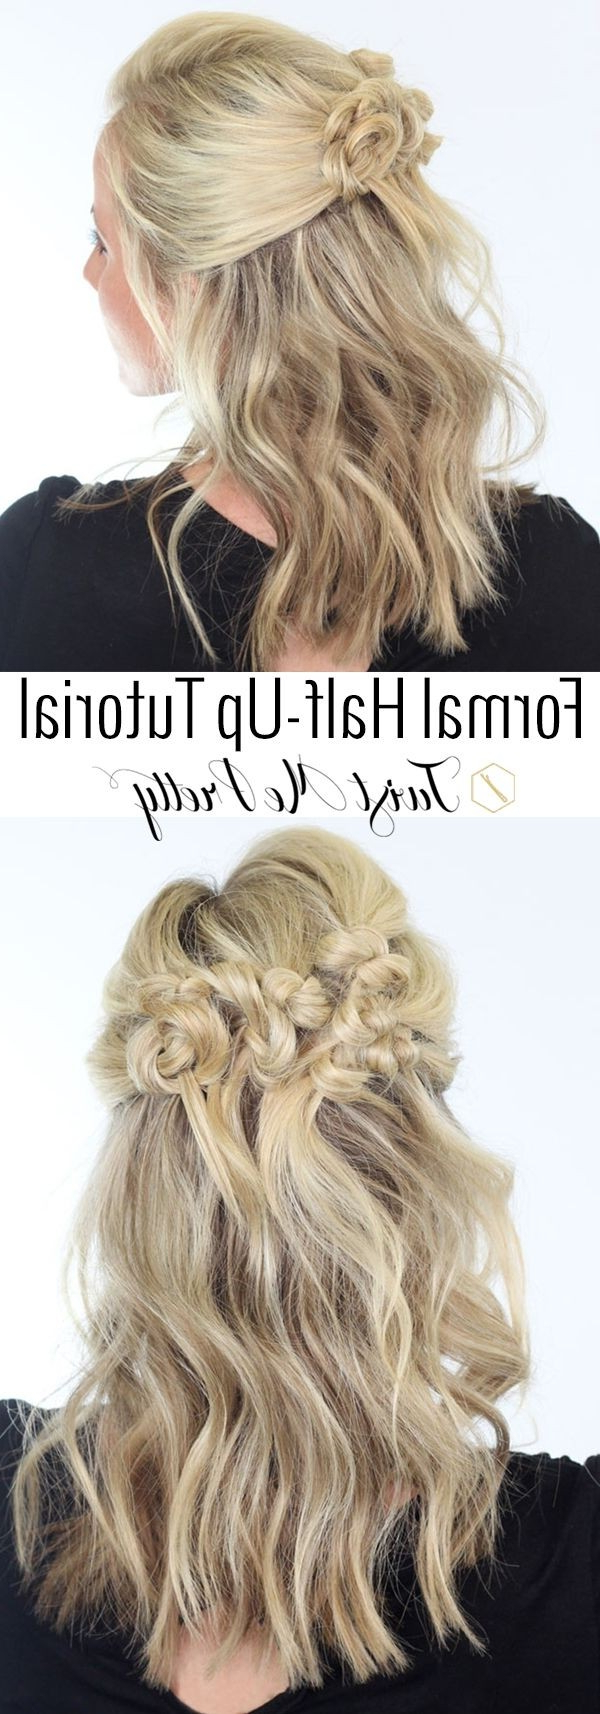 18 Shoulder Length Layered Hairstyles In Most Up To Date Half Long Half Medium Hairstyles (Gallery 11 of 20)